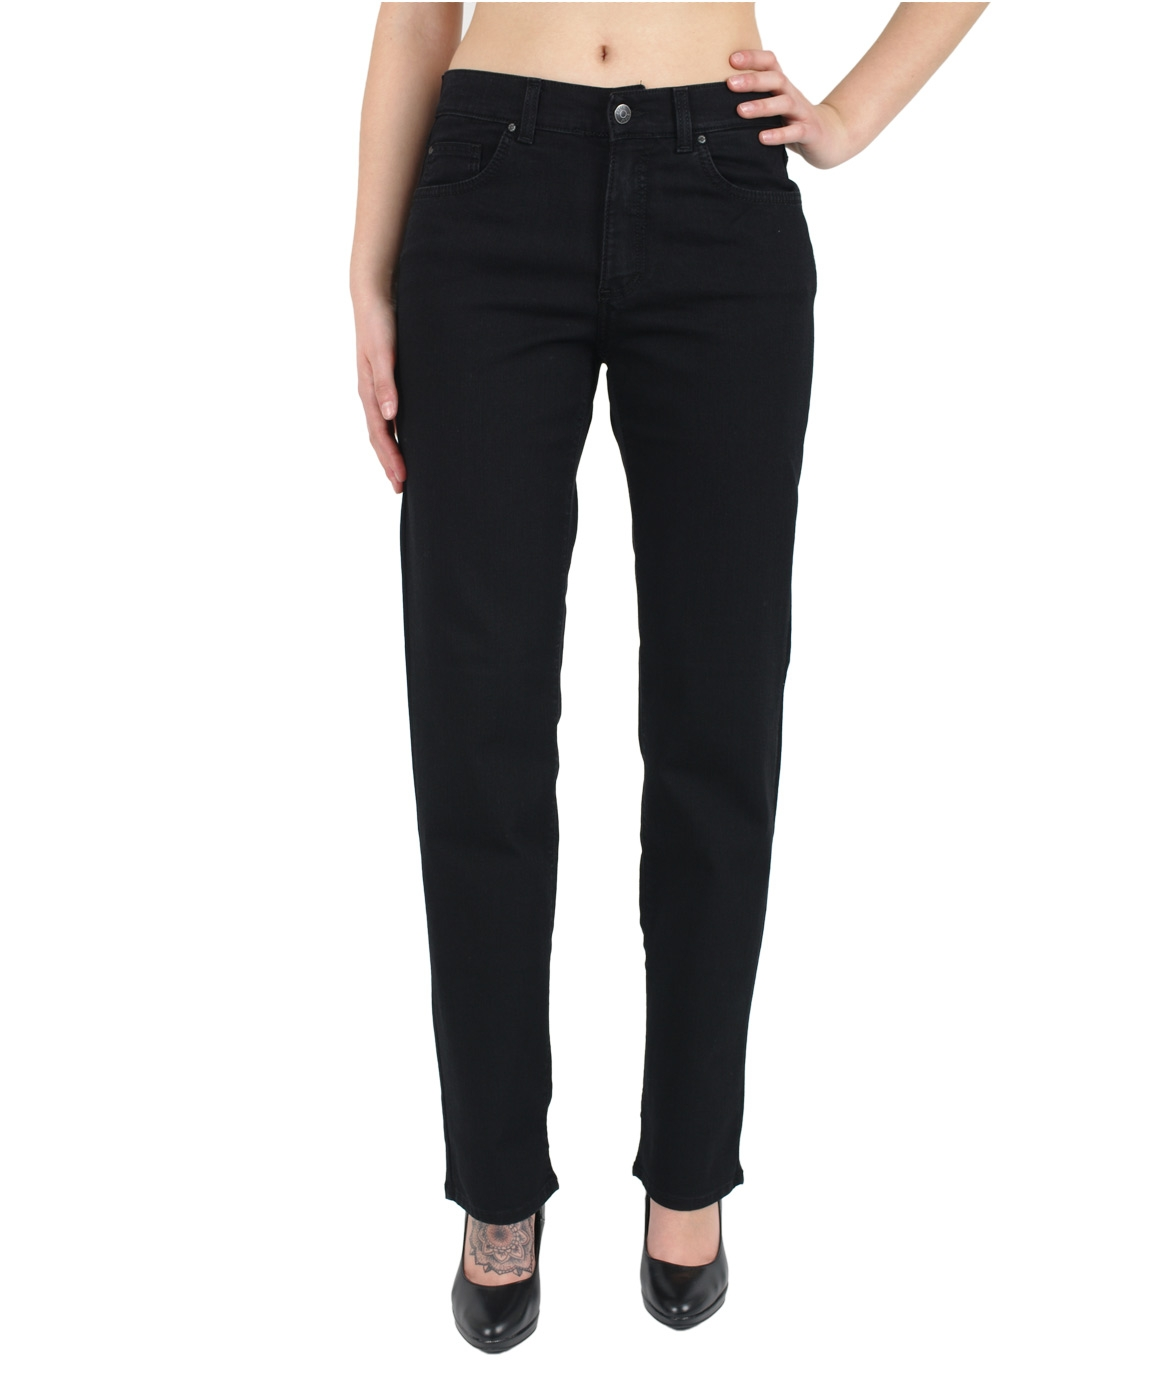 Hosen - Angels Straight Leg Jeans Dolly in JetBlack  - Onlineshop Jeans Meile